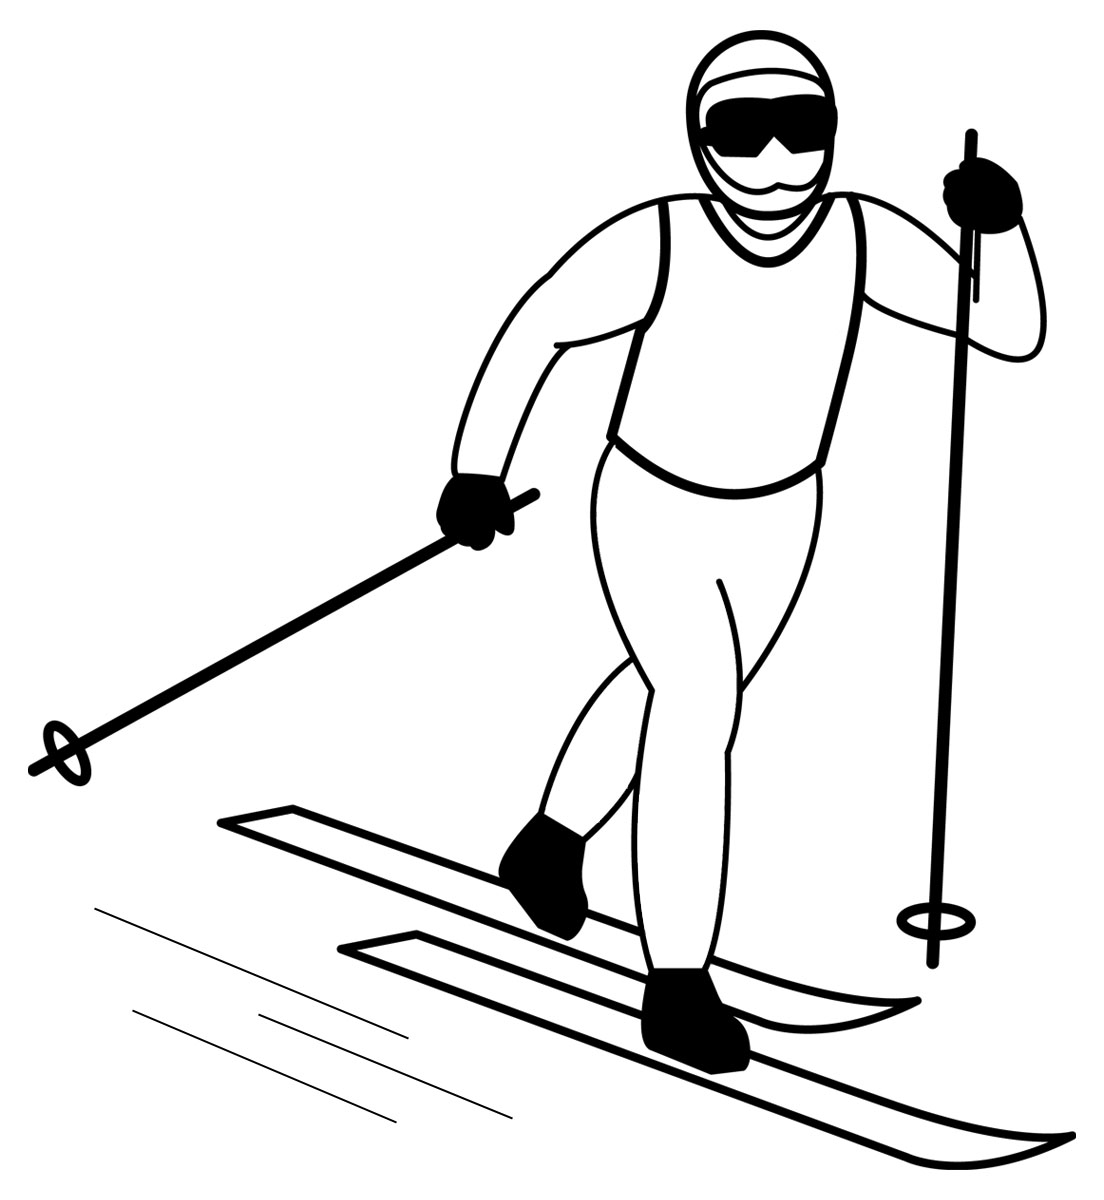 Skis clipart skiing person, Skis skiing person Transparent.